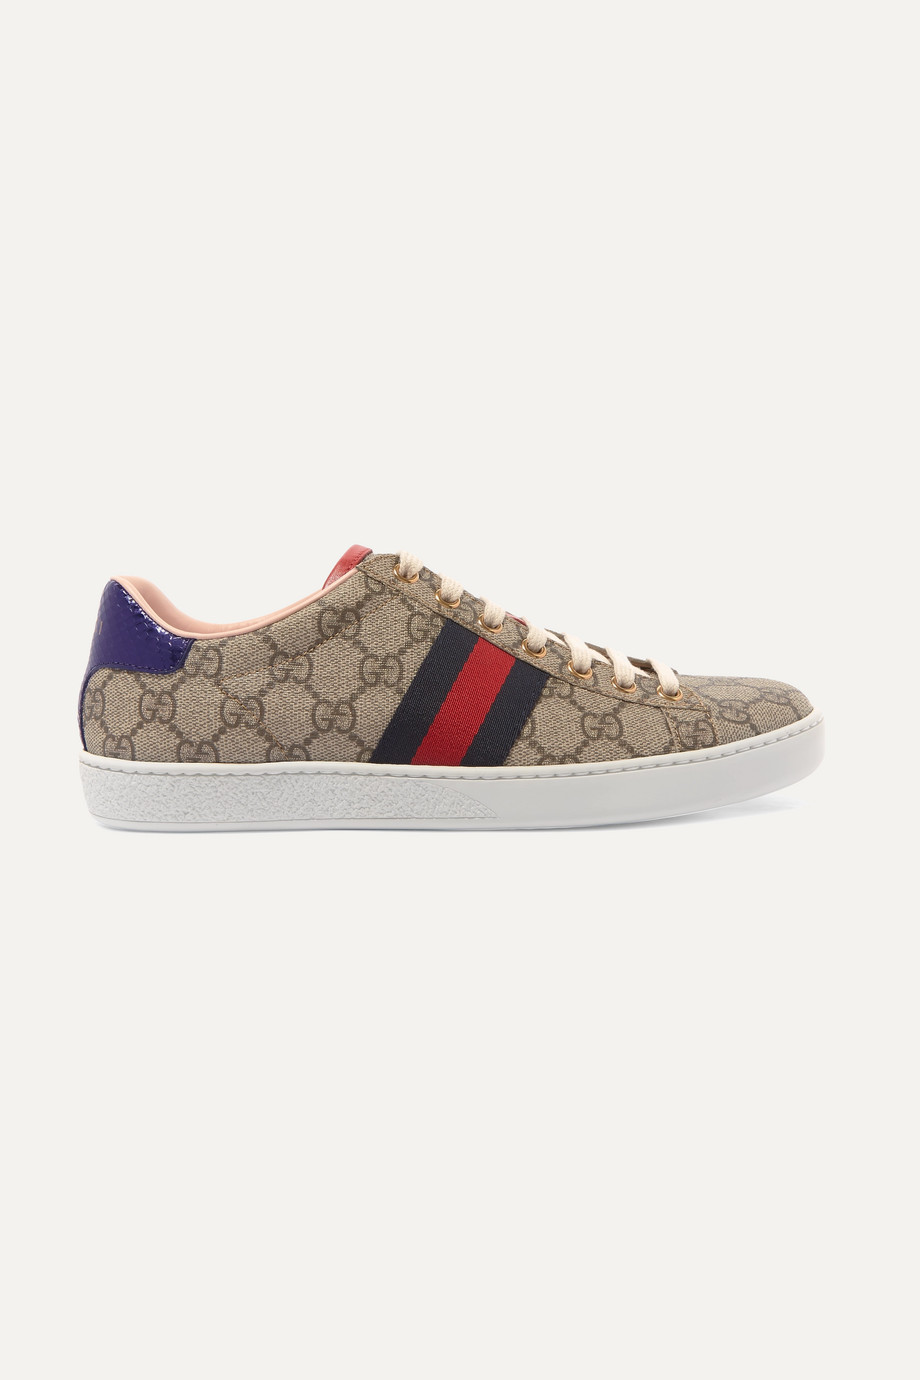 Gucci Ace GG Supreme metallic watersnake-trimmed logo-print coated-canvas sneakers